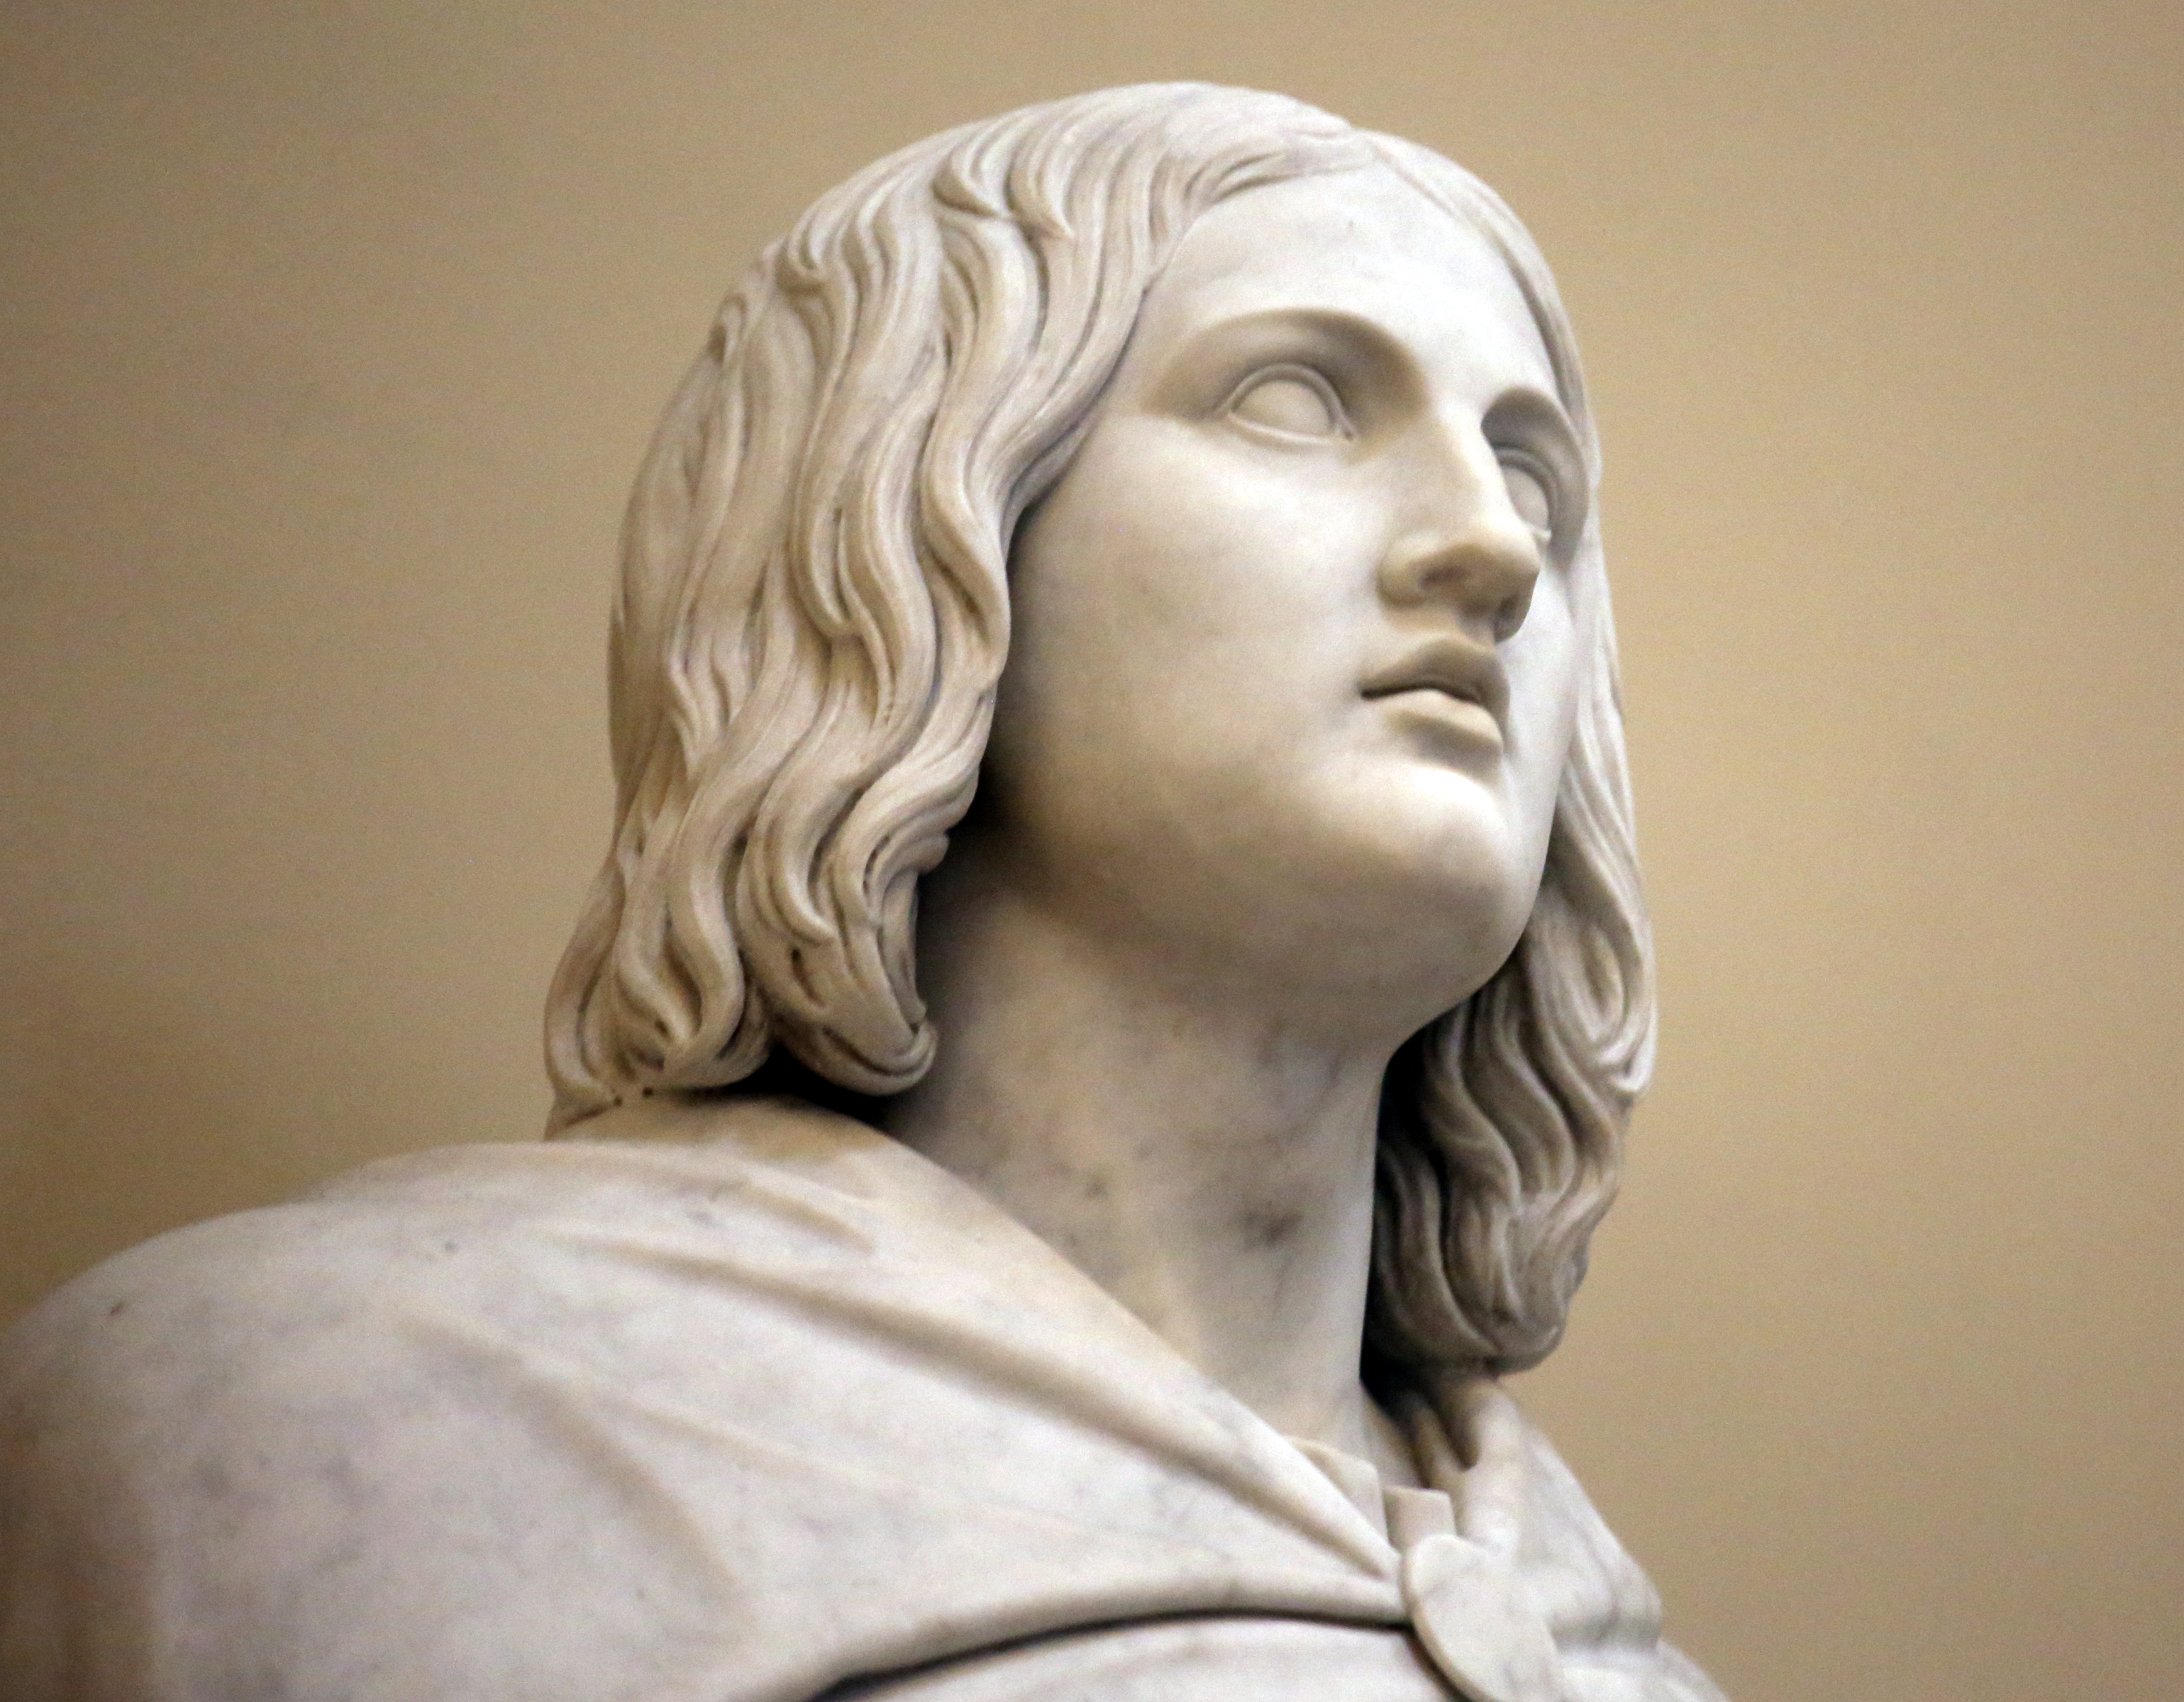 Bertel Thorvaldsen's statue of John, one of the 12 apostles, is shown without a beard at the Church of Our Lady in Copenhagen, Denmark, on Tuesday, Nov. 13, 2018. The 12 apostles statues were carved out of Carrara marble between 1829 and 1848. Replicas of the statues are now on display in the Rome Temple Visitors' Center in Italy.